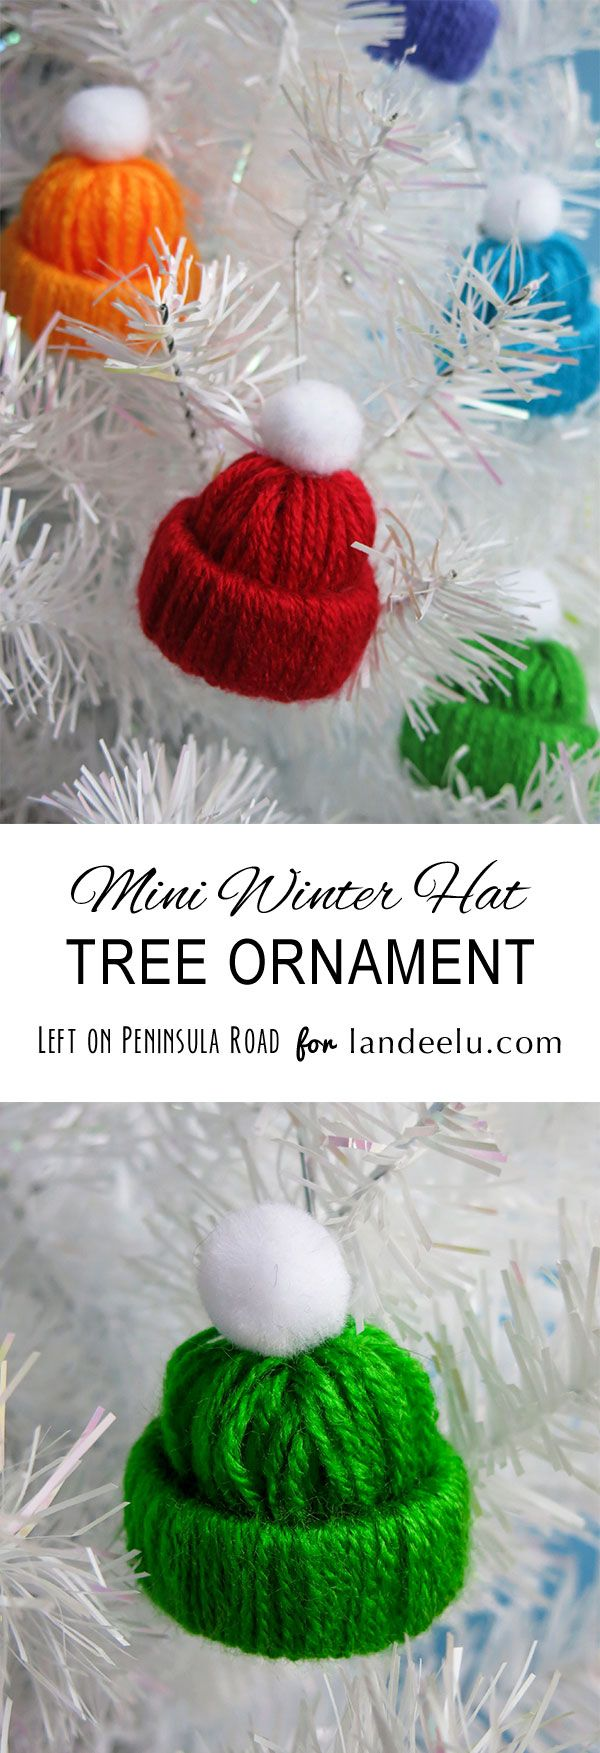 Make Mini Winter Hats to hang on your Christmas tree.